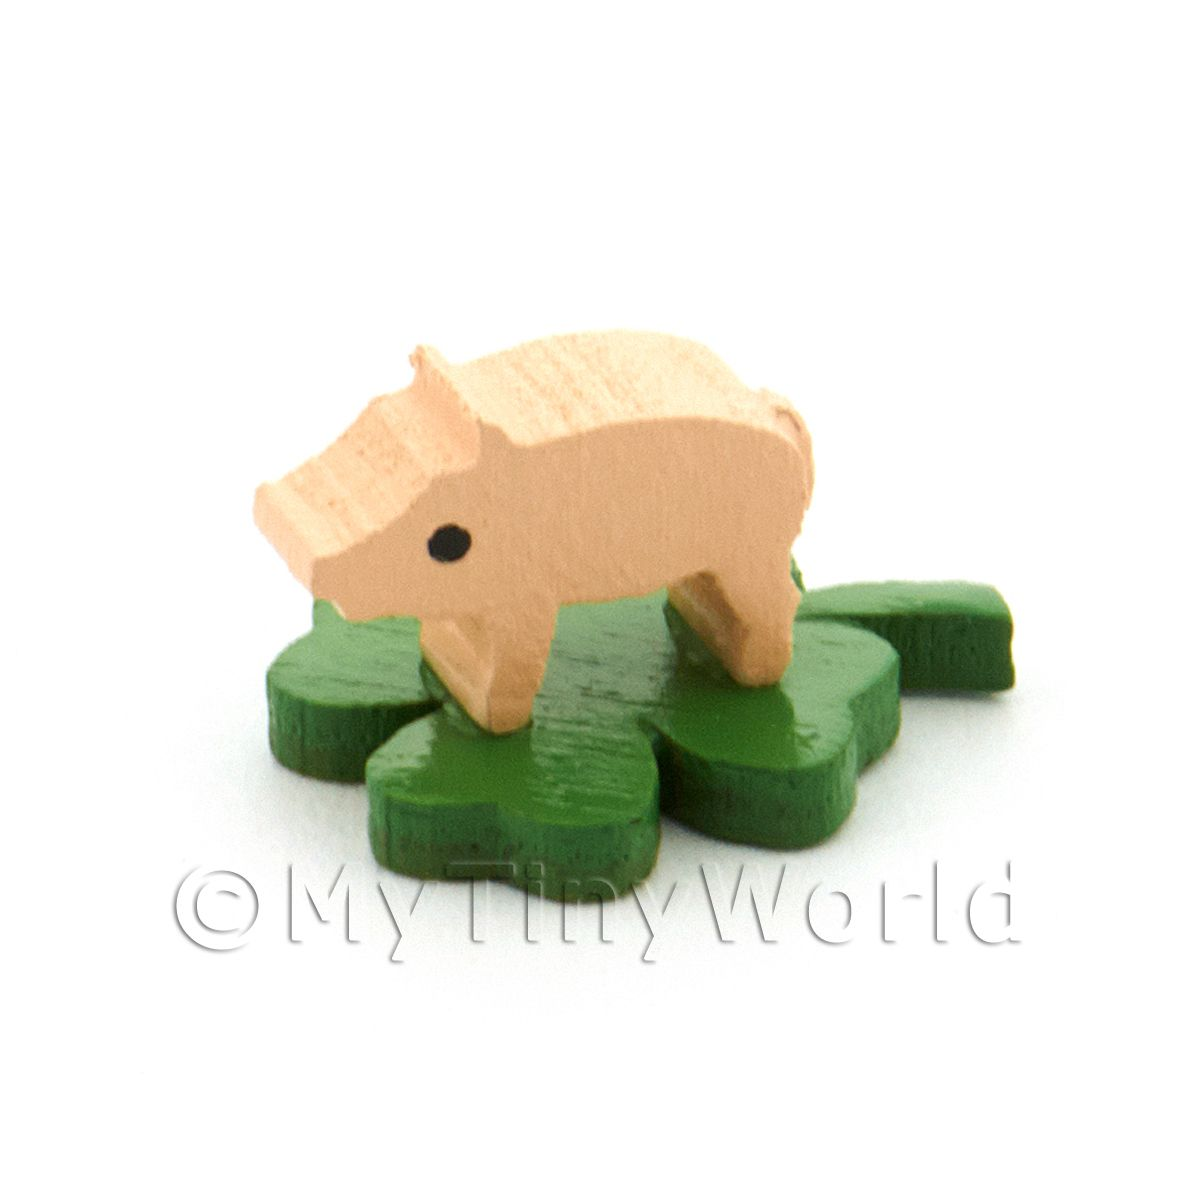 Dolls House Miniature Tiny Pig Standing On A Clover Leaf